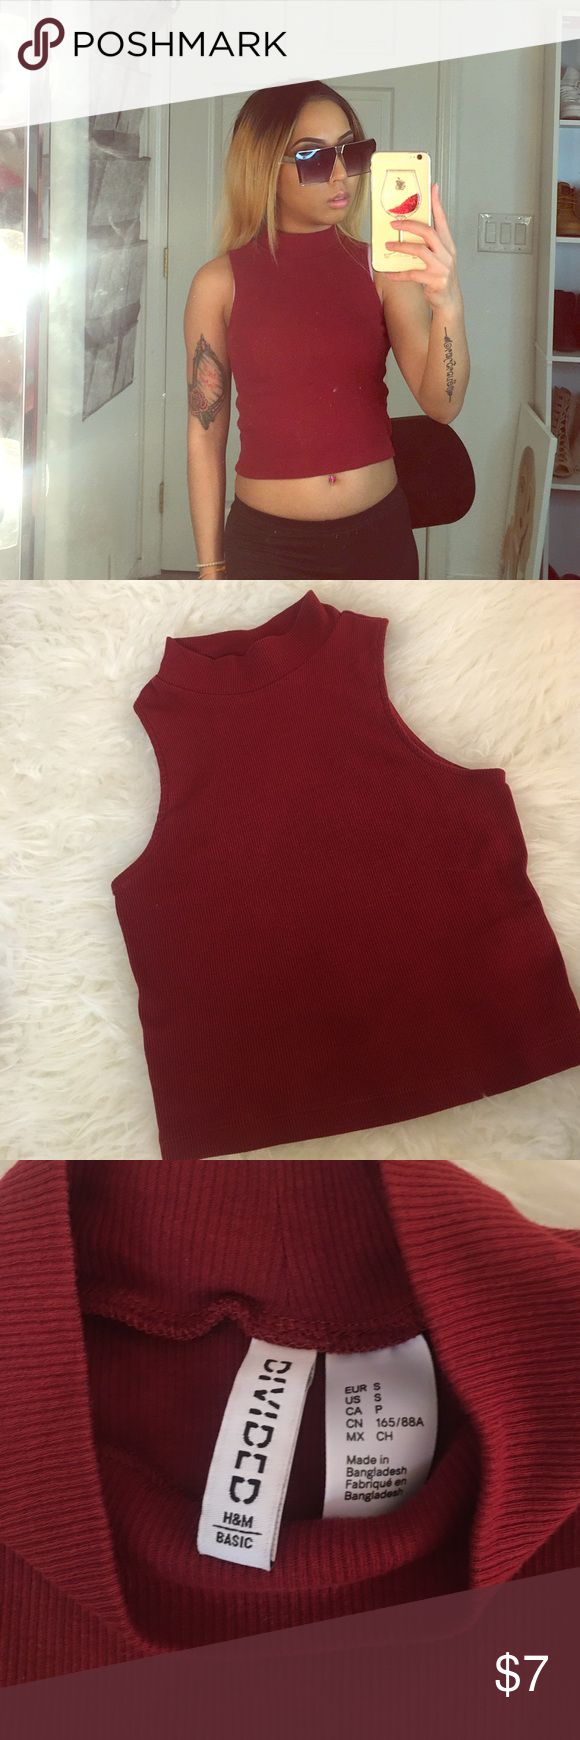 H&M Turtleneck Crop Top Cute & simple turtleneck crop top from H&M. The color of the top is maroon. Only worn once. H&M Tops Crop Tops